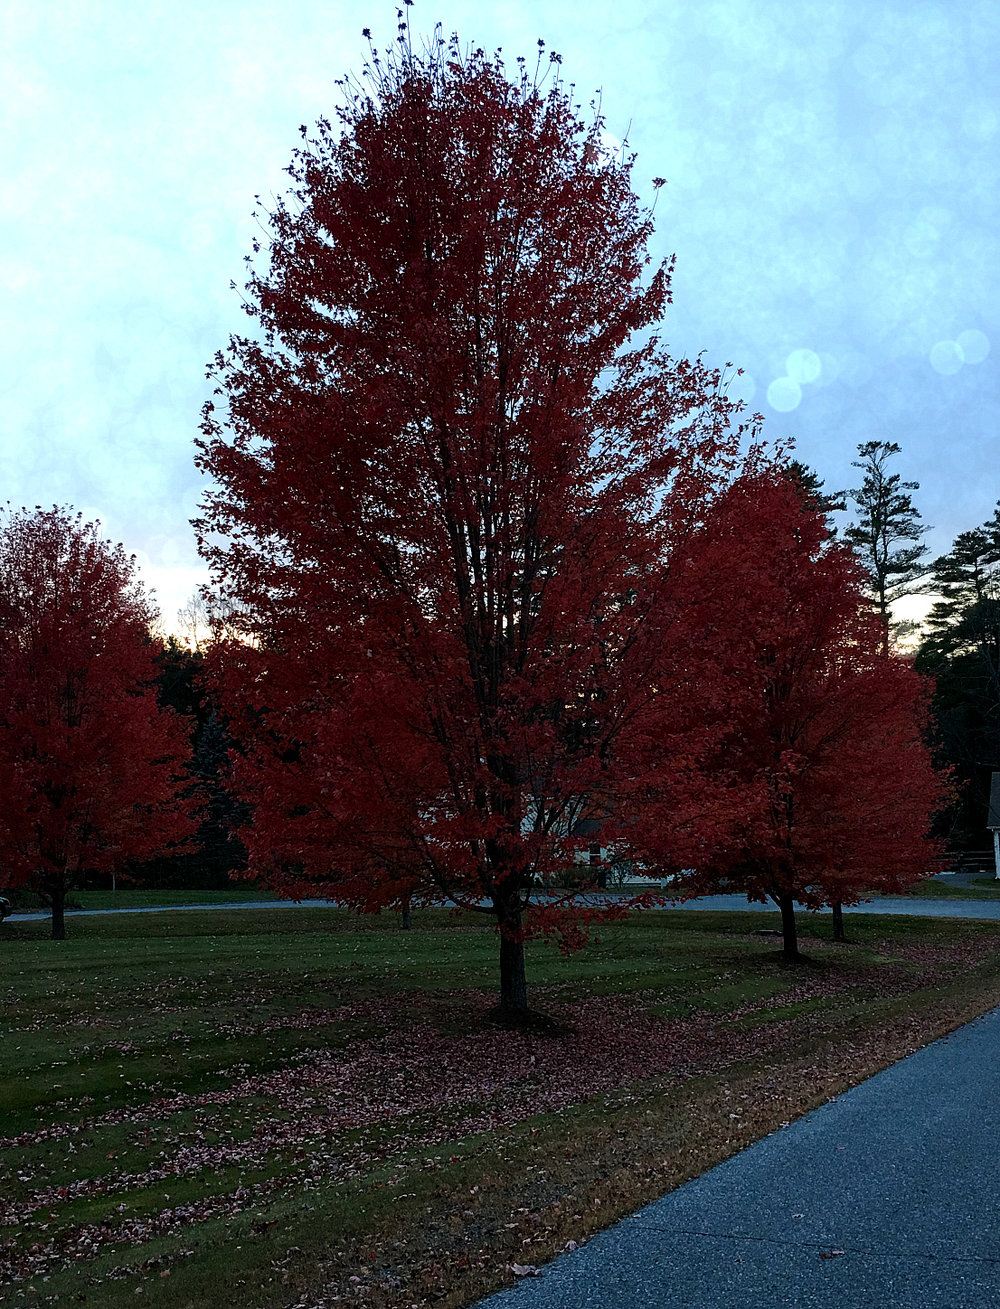 © Red Tree At Dusk by Dena T Bray